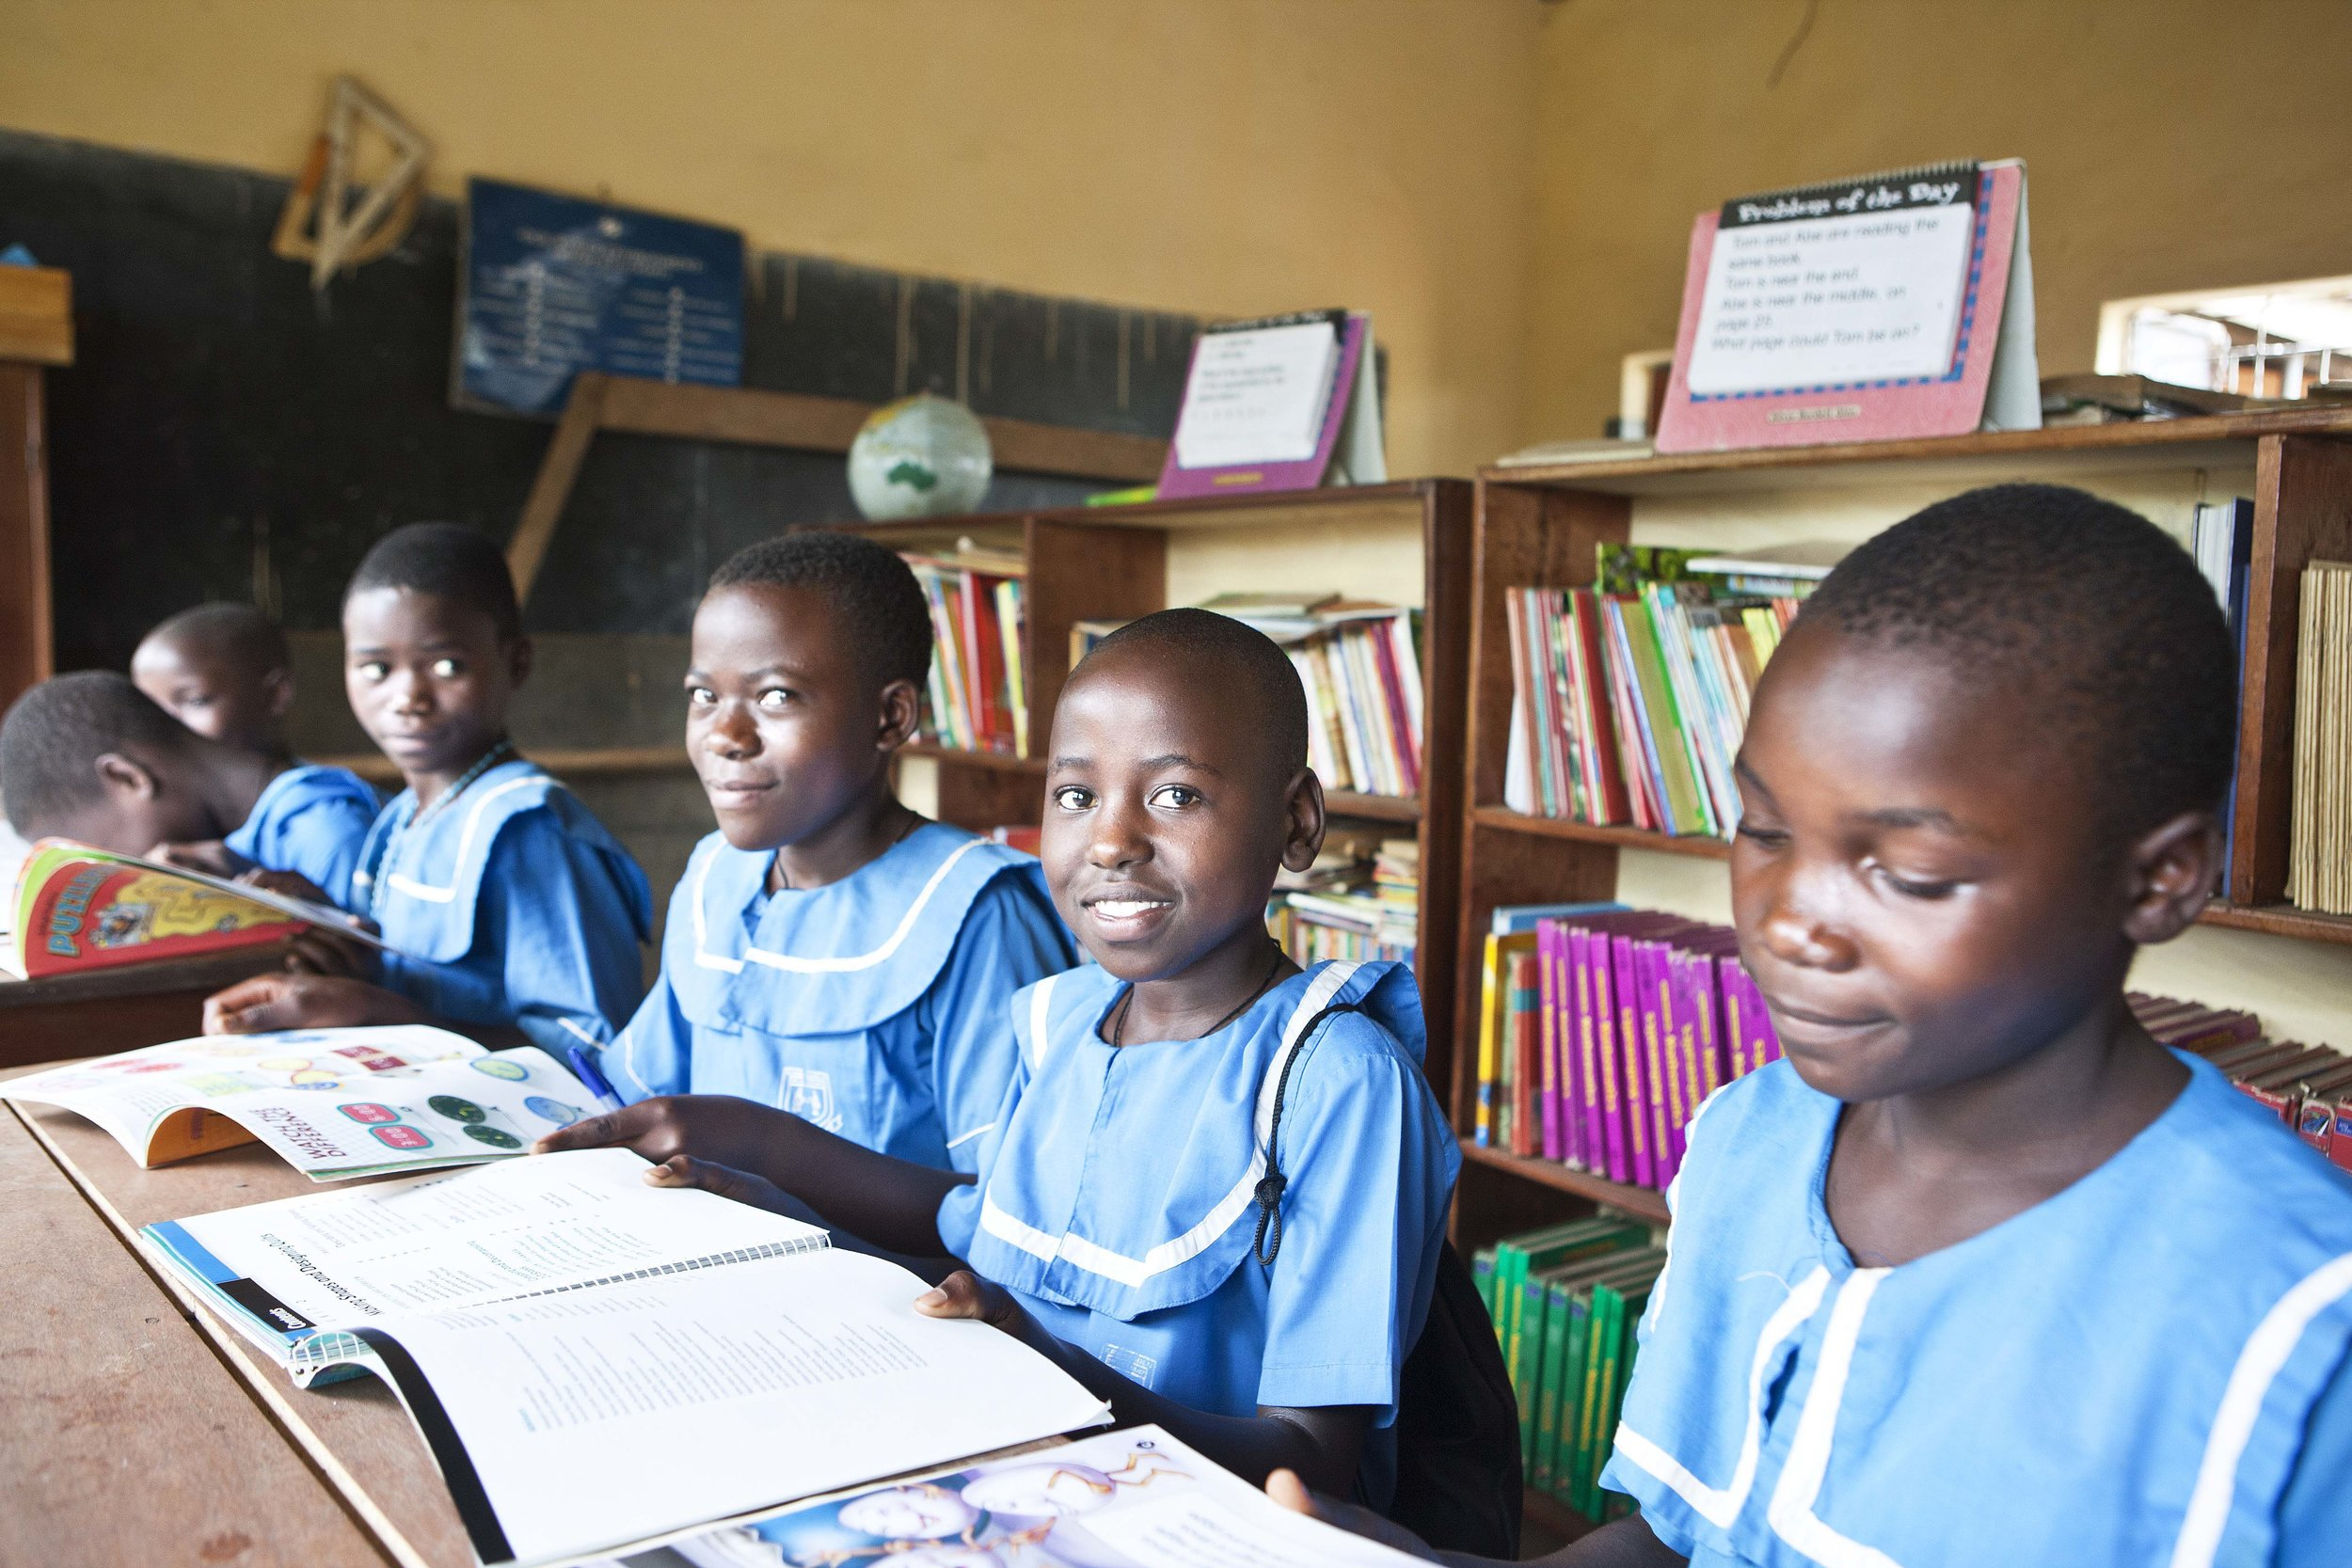 Girls studying in school library created by Brick by Brick